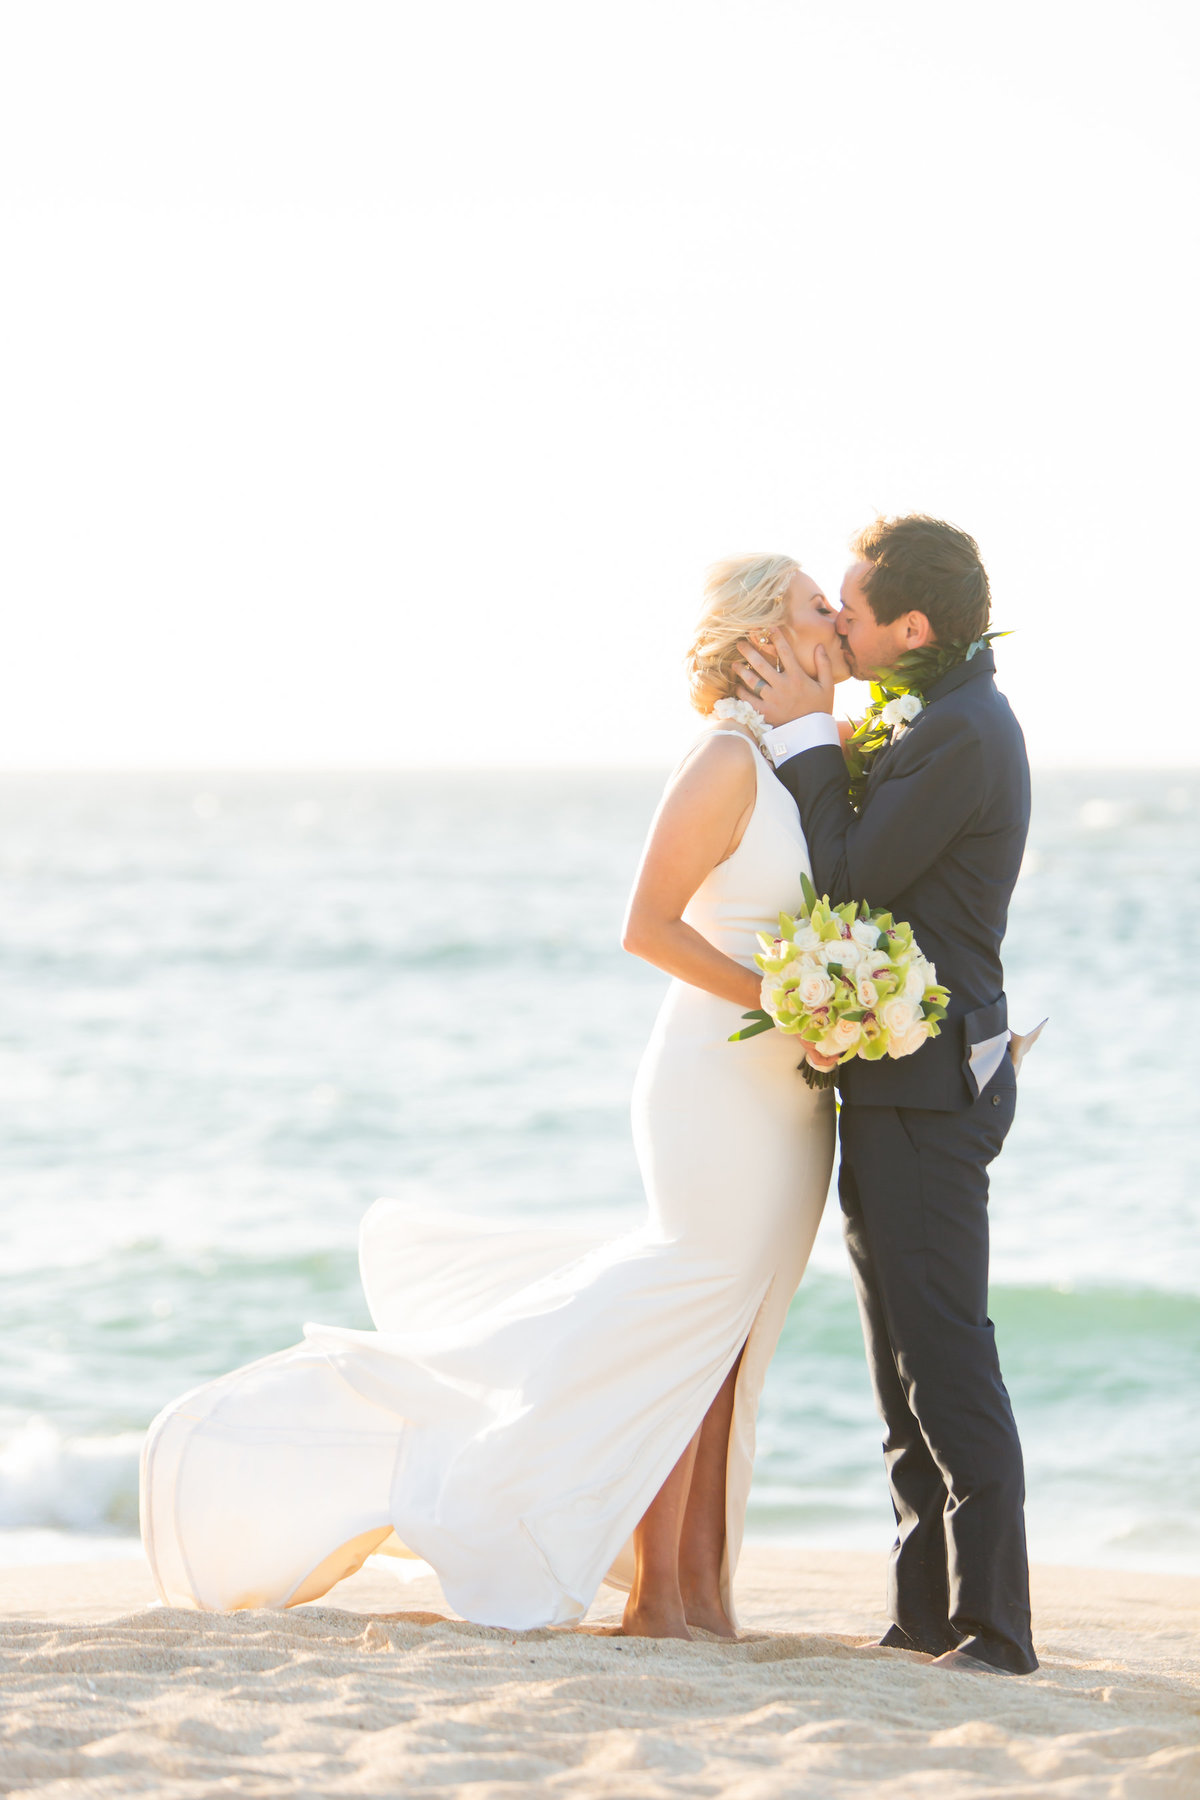 Maui wedding photography - Kiss